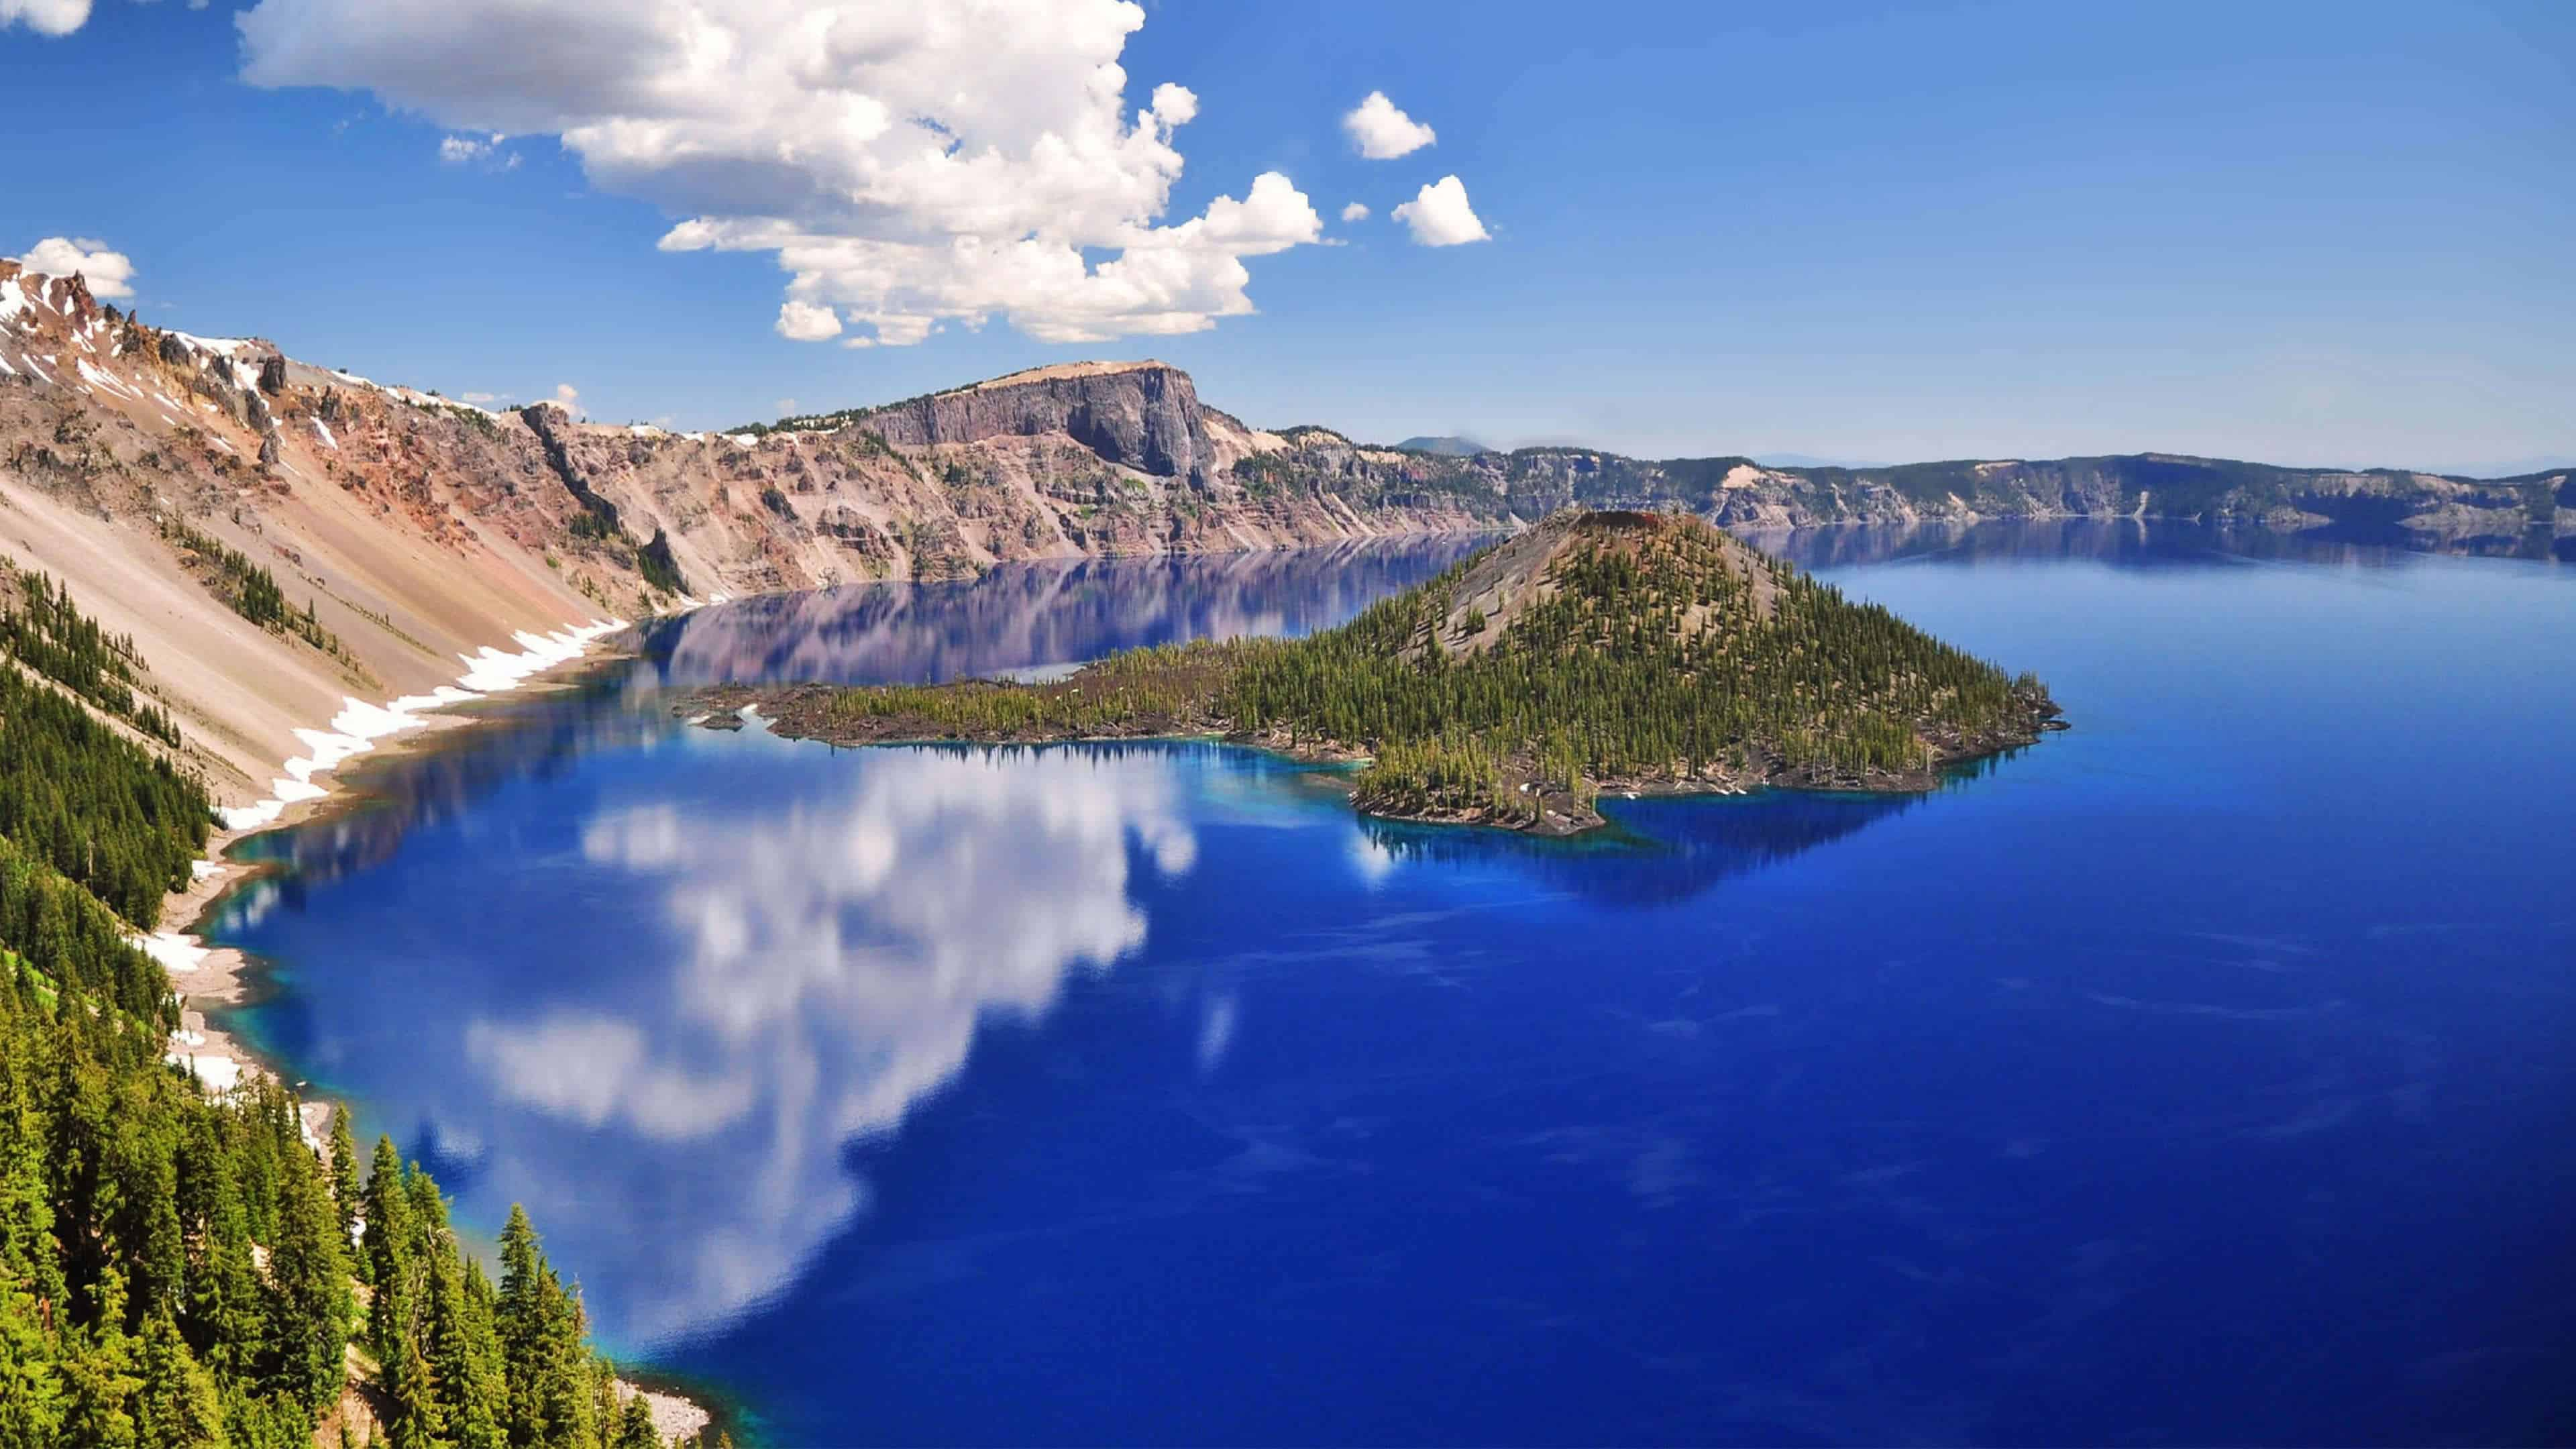 crater lake national park, oregon, united states uhd 4k wallpaper